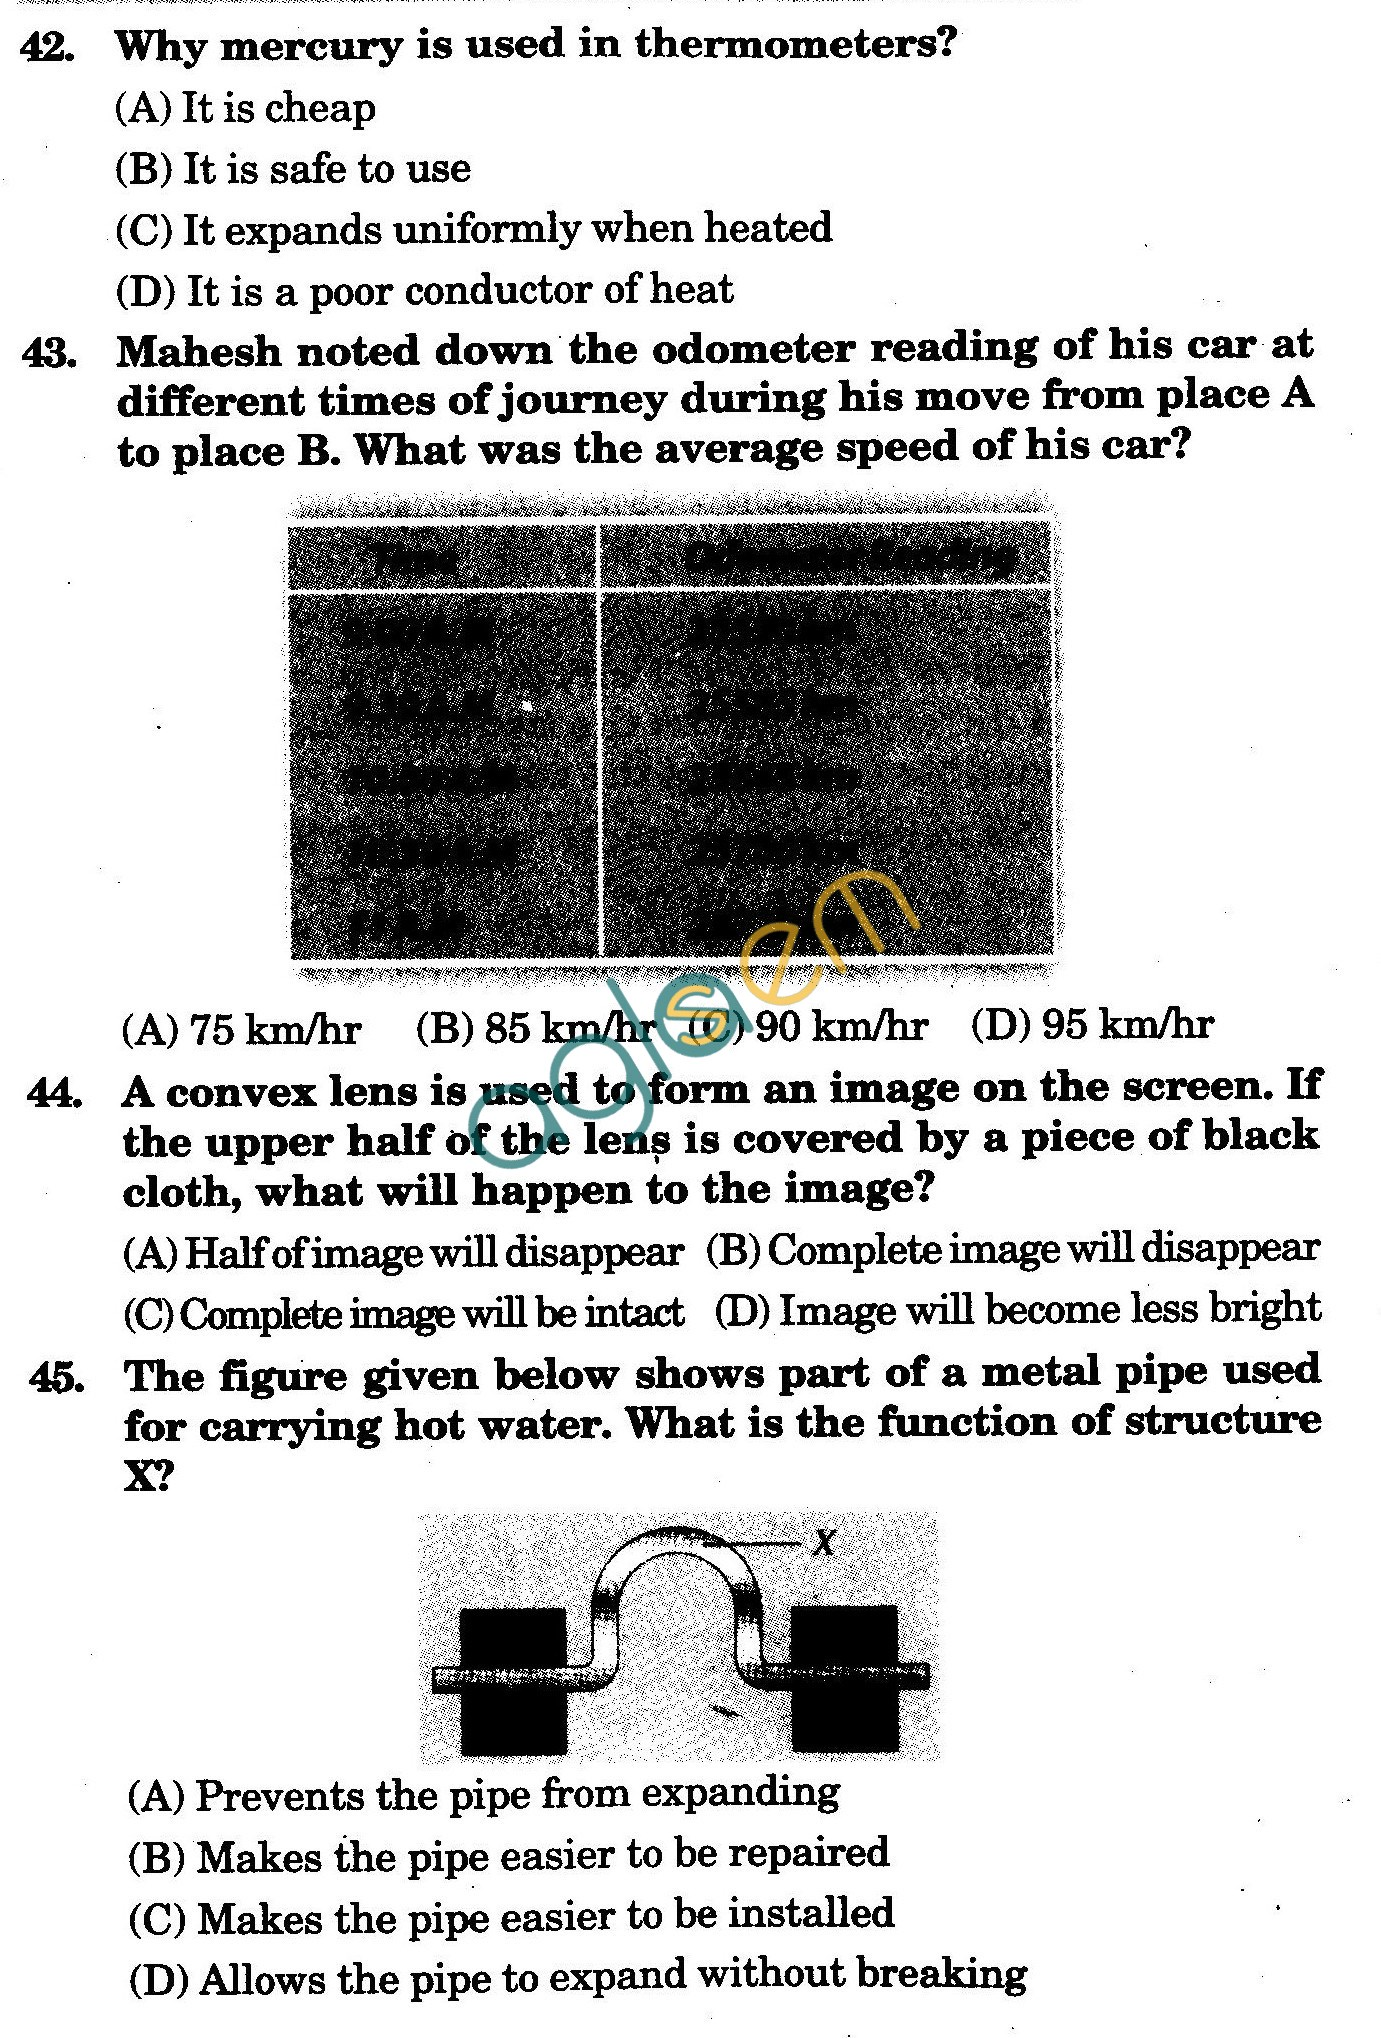 NSTSE 2009 Class VII Question Paper with Answers - Physics